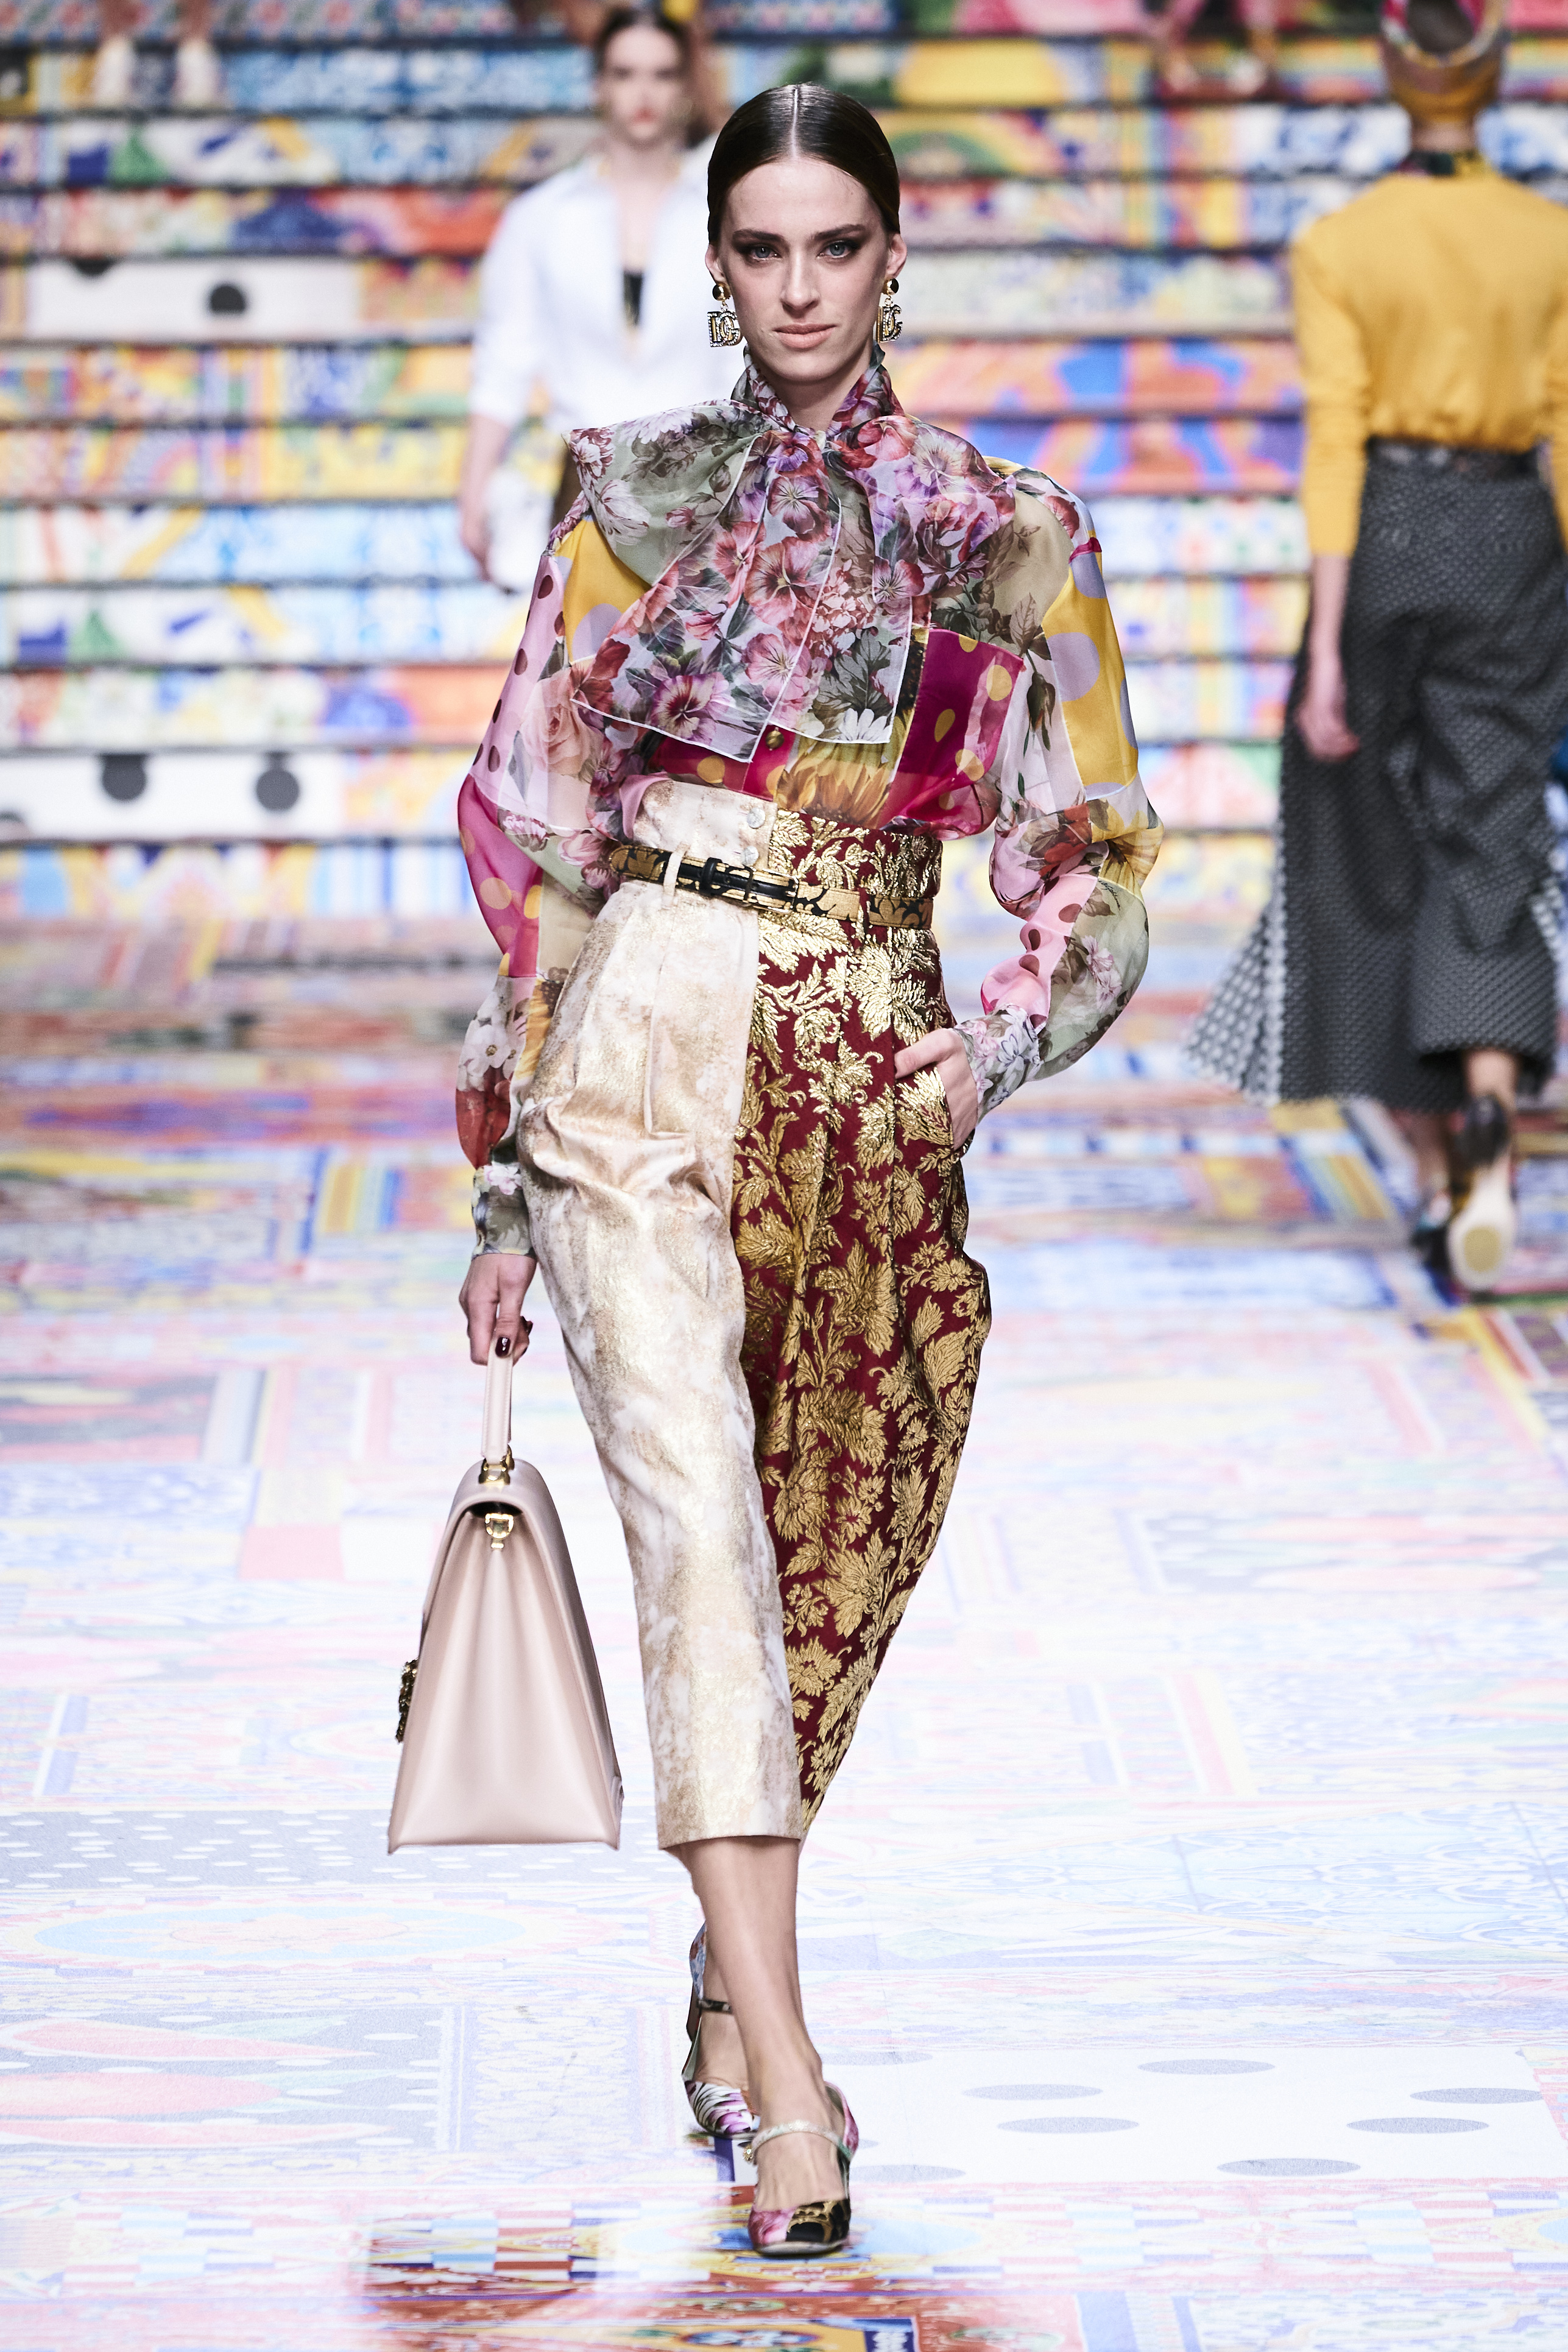 Prints galore: Dolce & Gabbana and Versace's Spring/Summer '21 collection (фото 3)